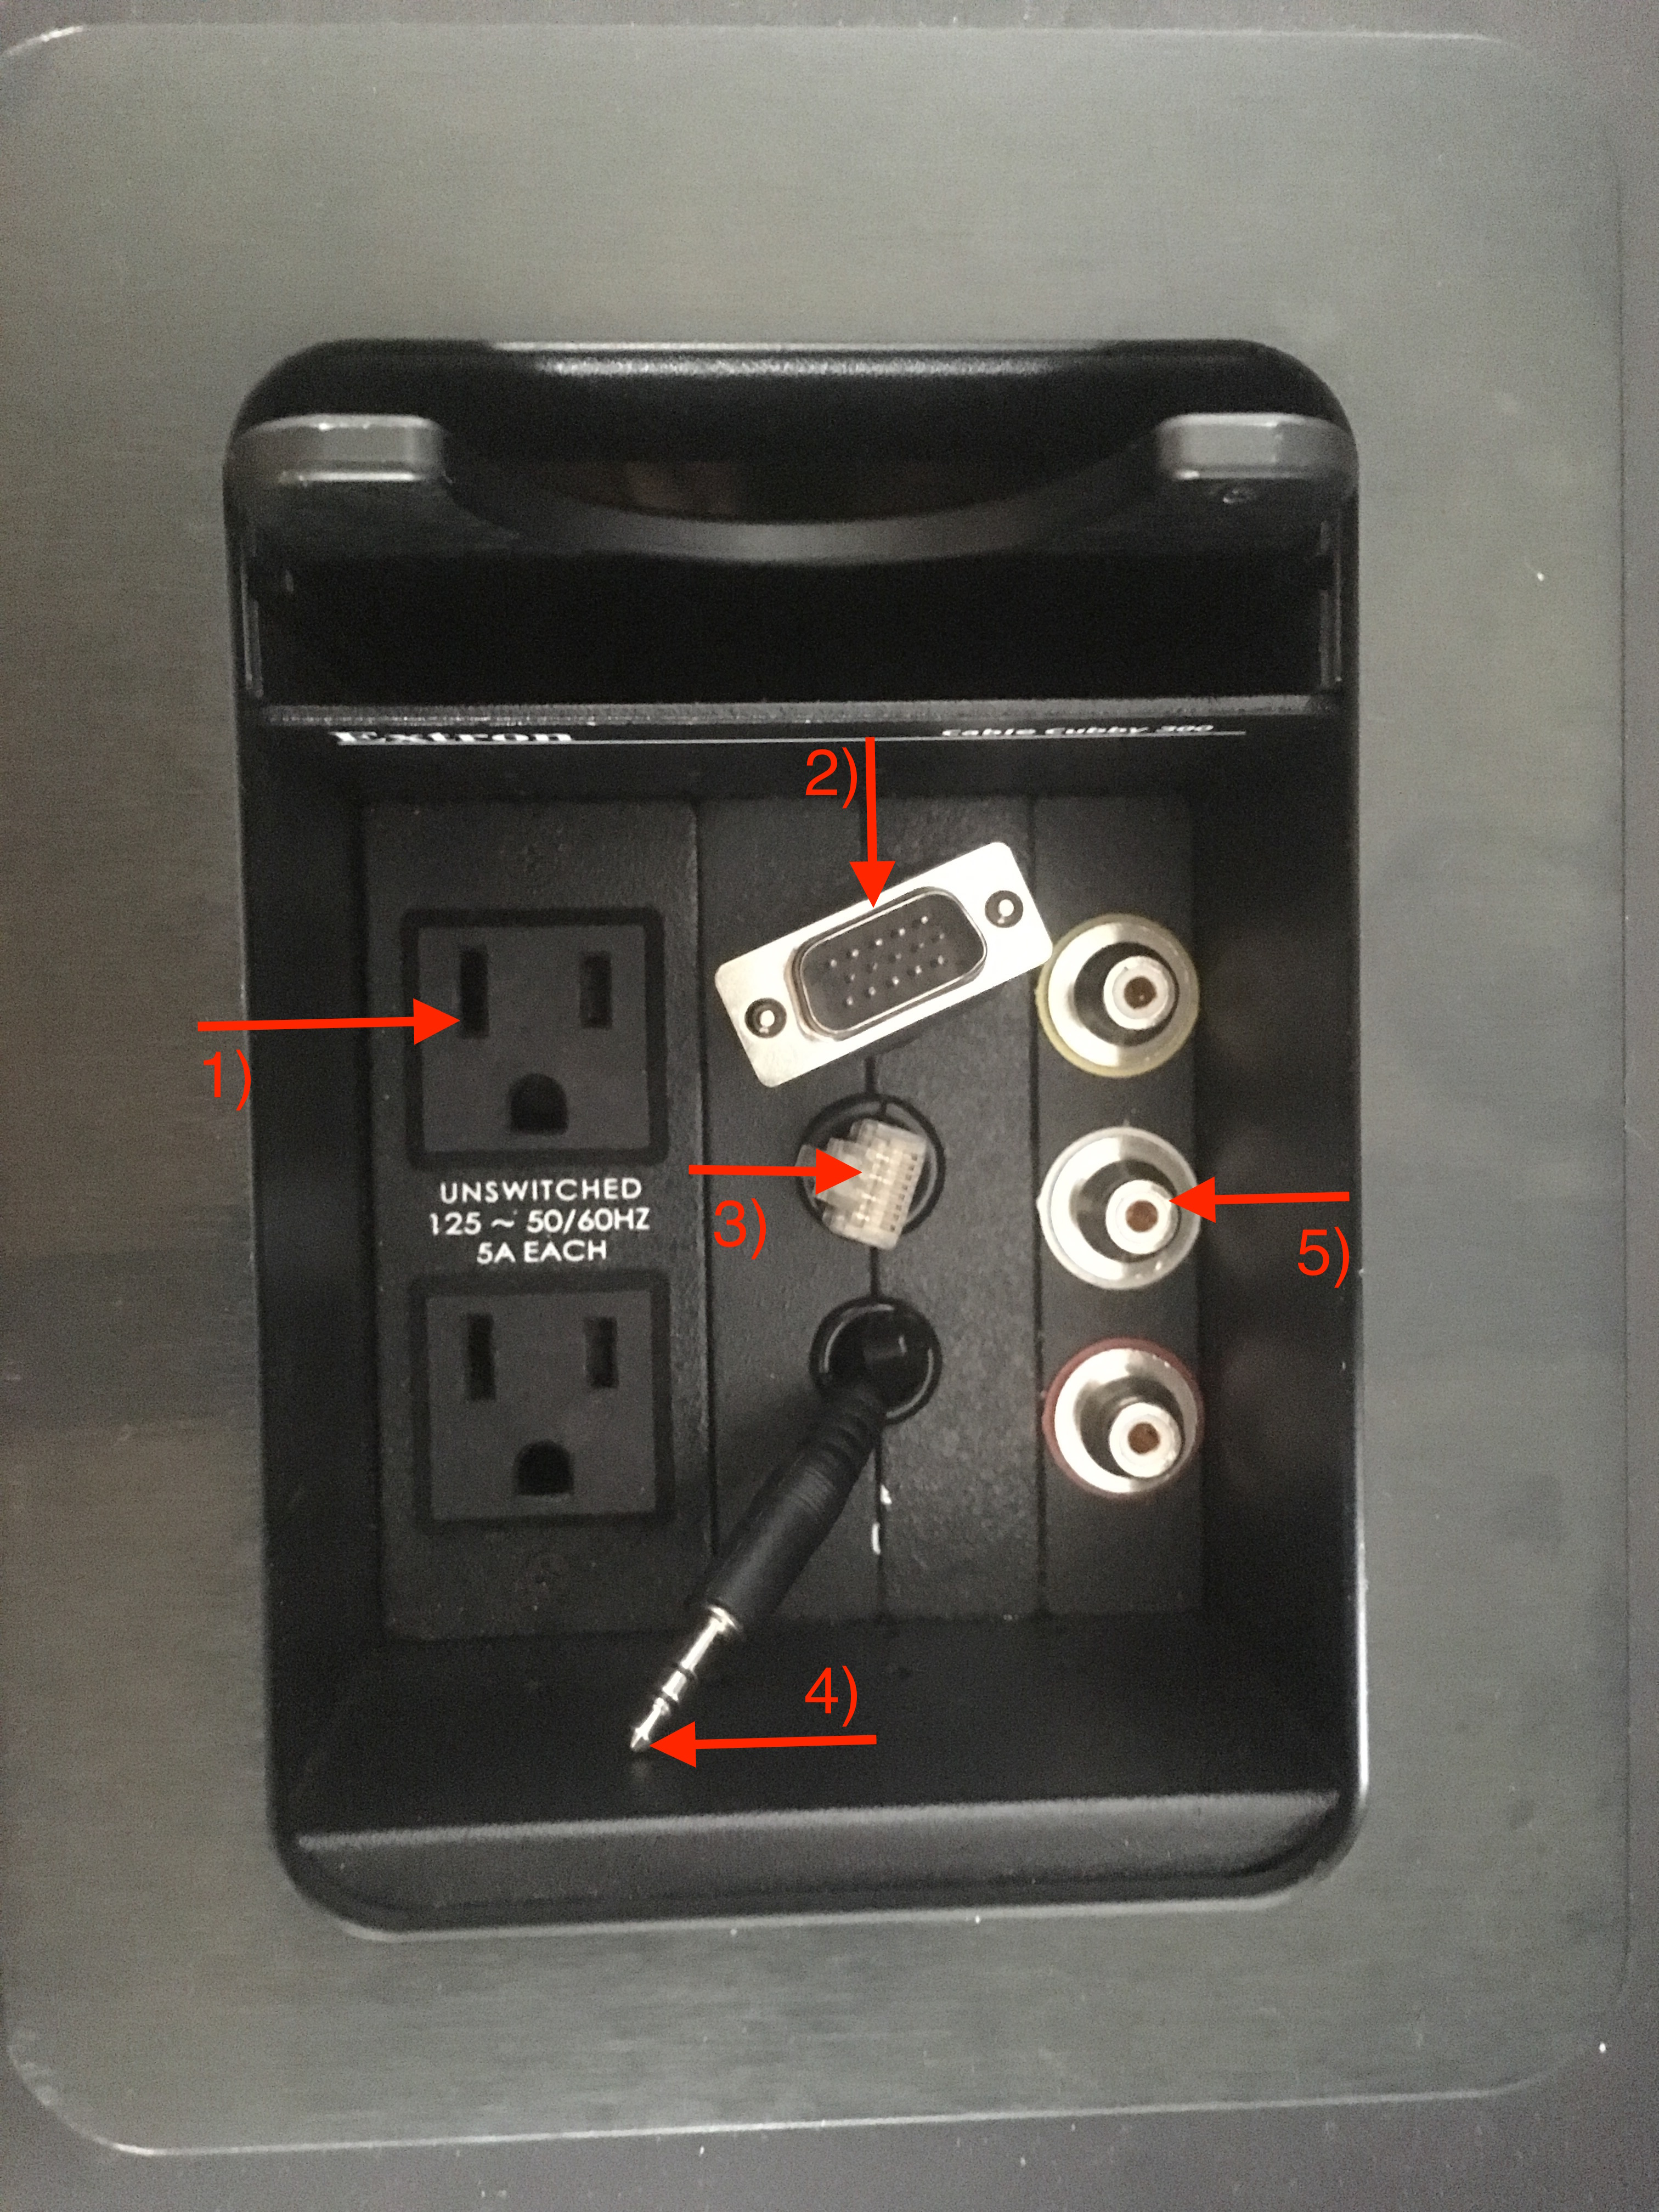 Photo of the cable cubby installed at the instructor's station with the power outlets, vga cable, network cable, audio cable, and inputs identified by number